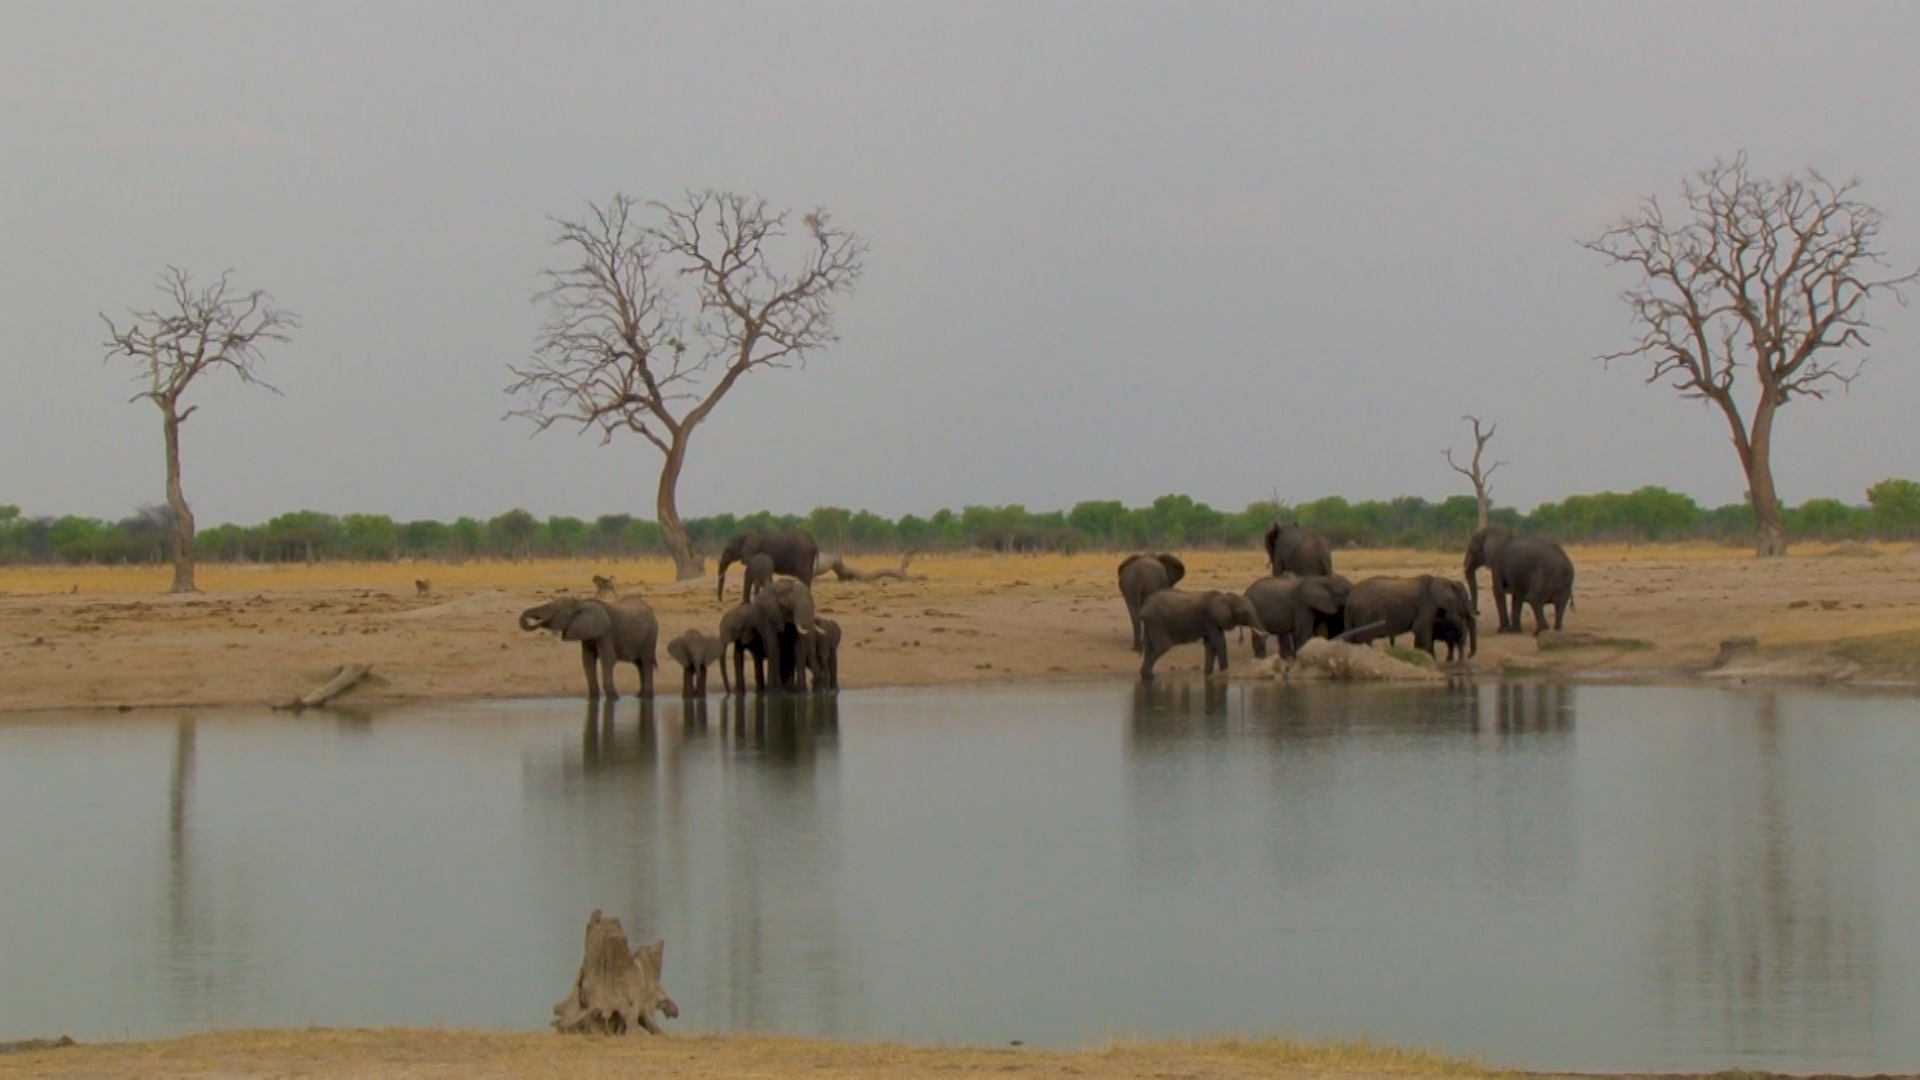 Elephant Effects on Ecosystems by Douglas Wise.